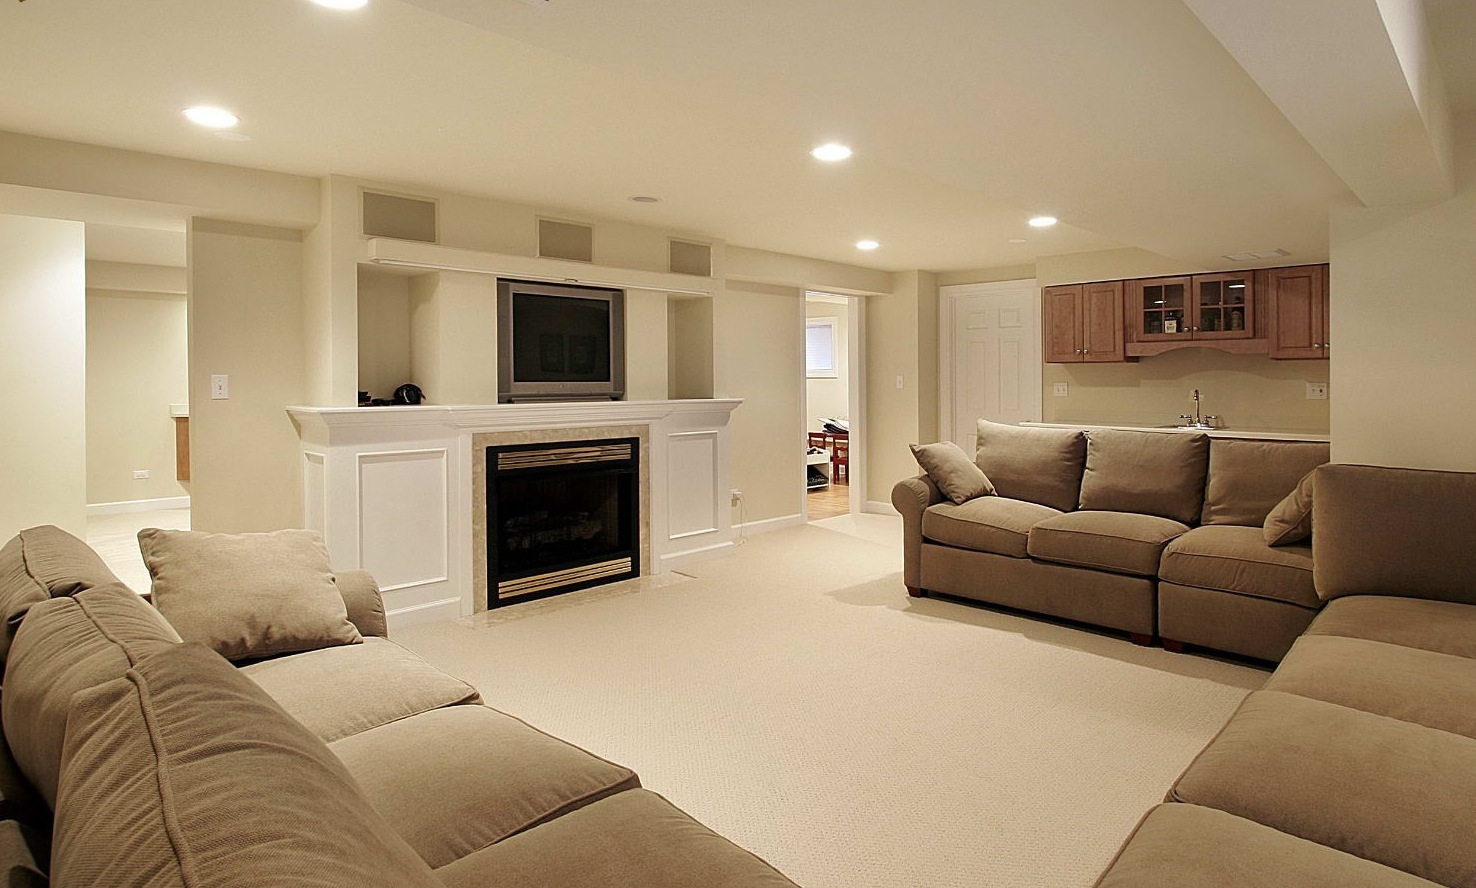 Remodeling Basement Ideas 30 Basement Remodeling Ideas & Inspiration